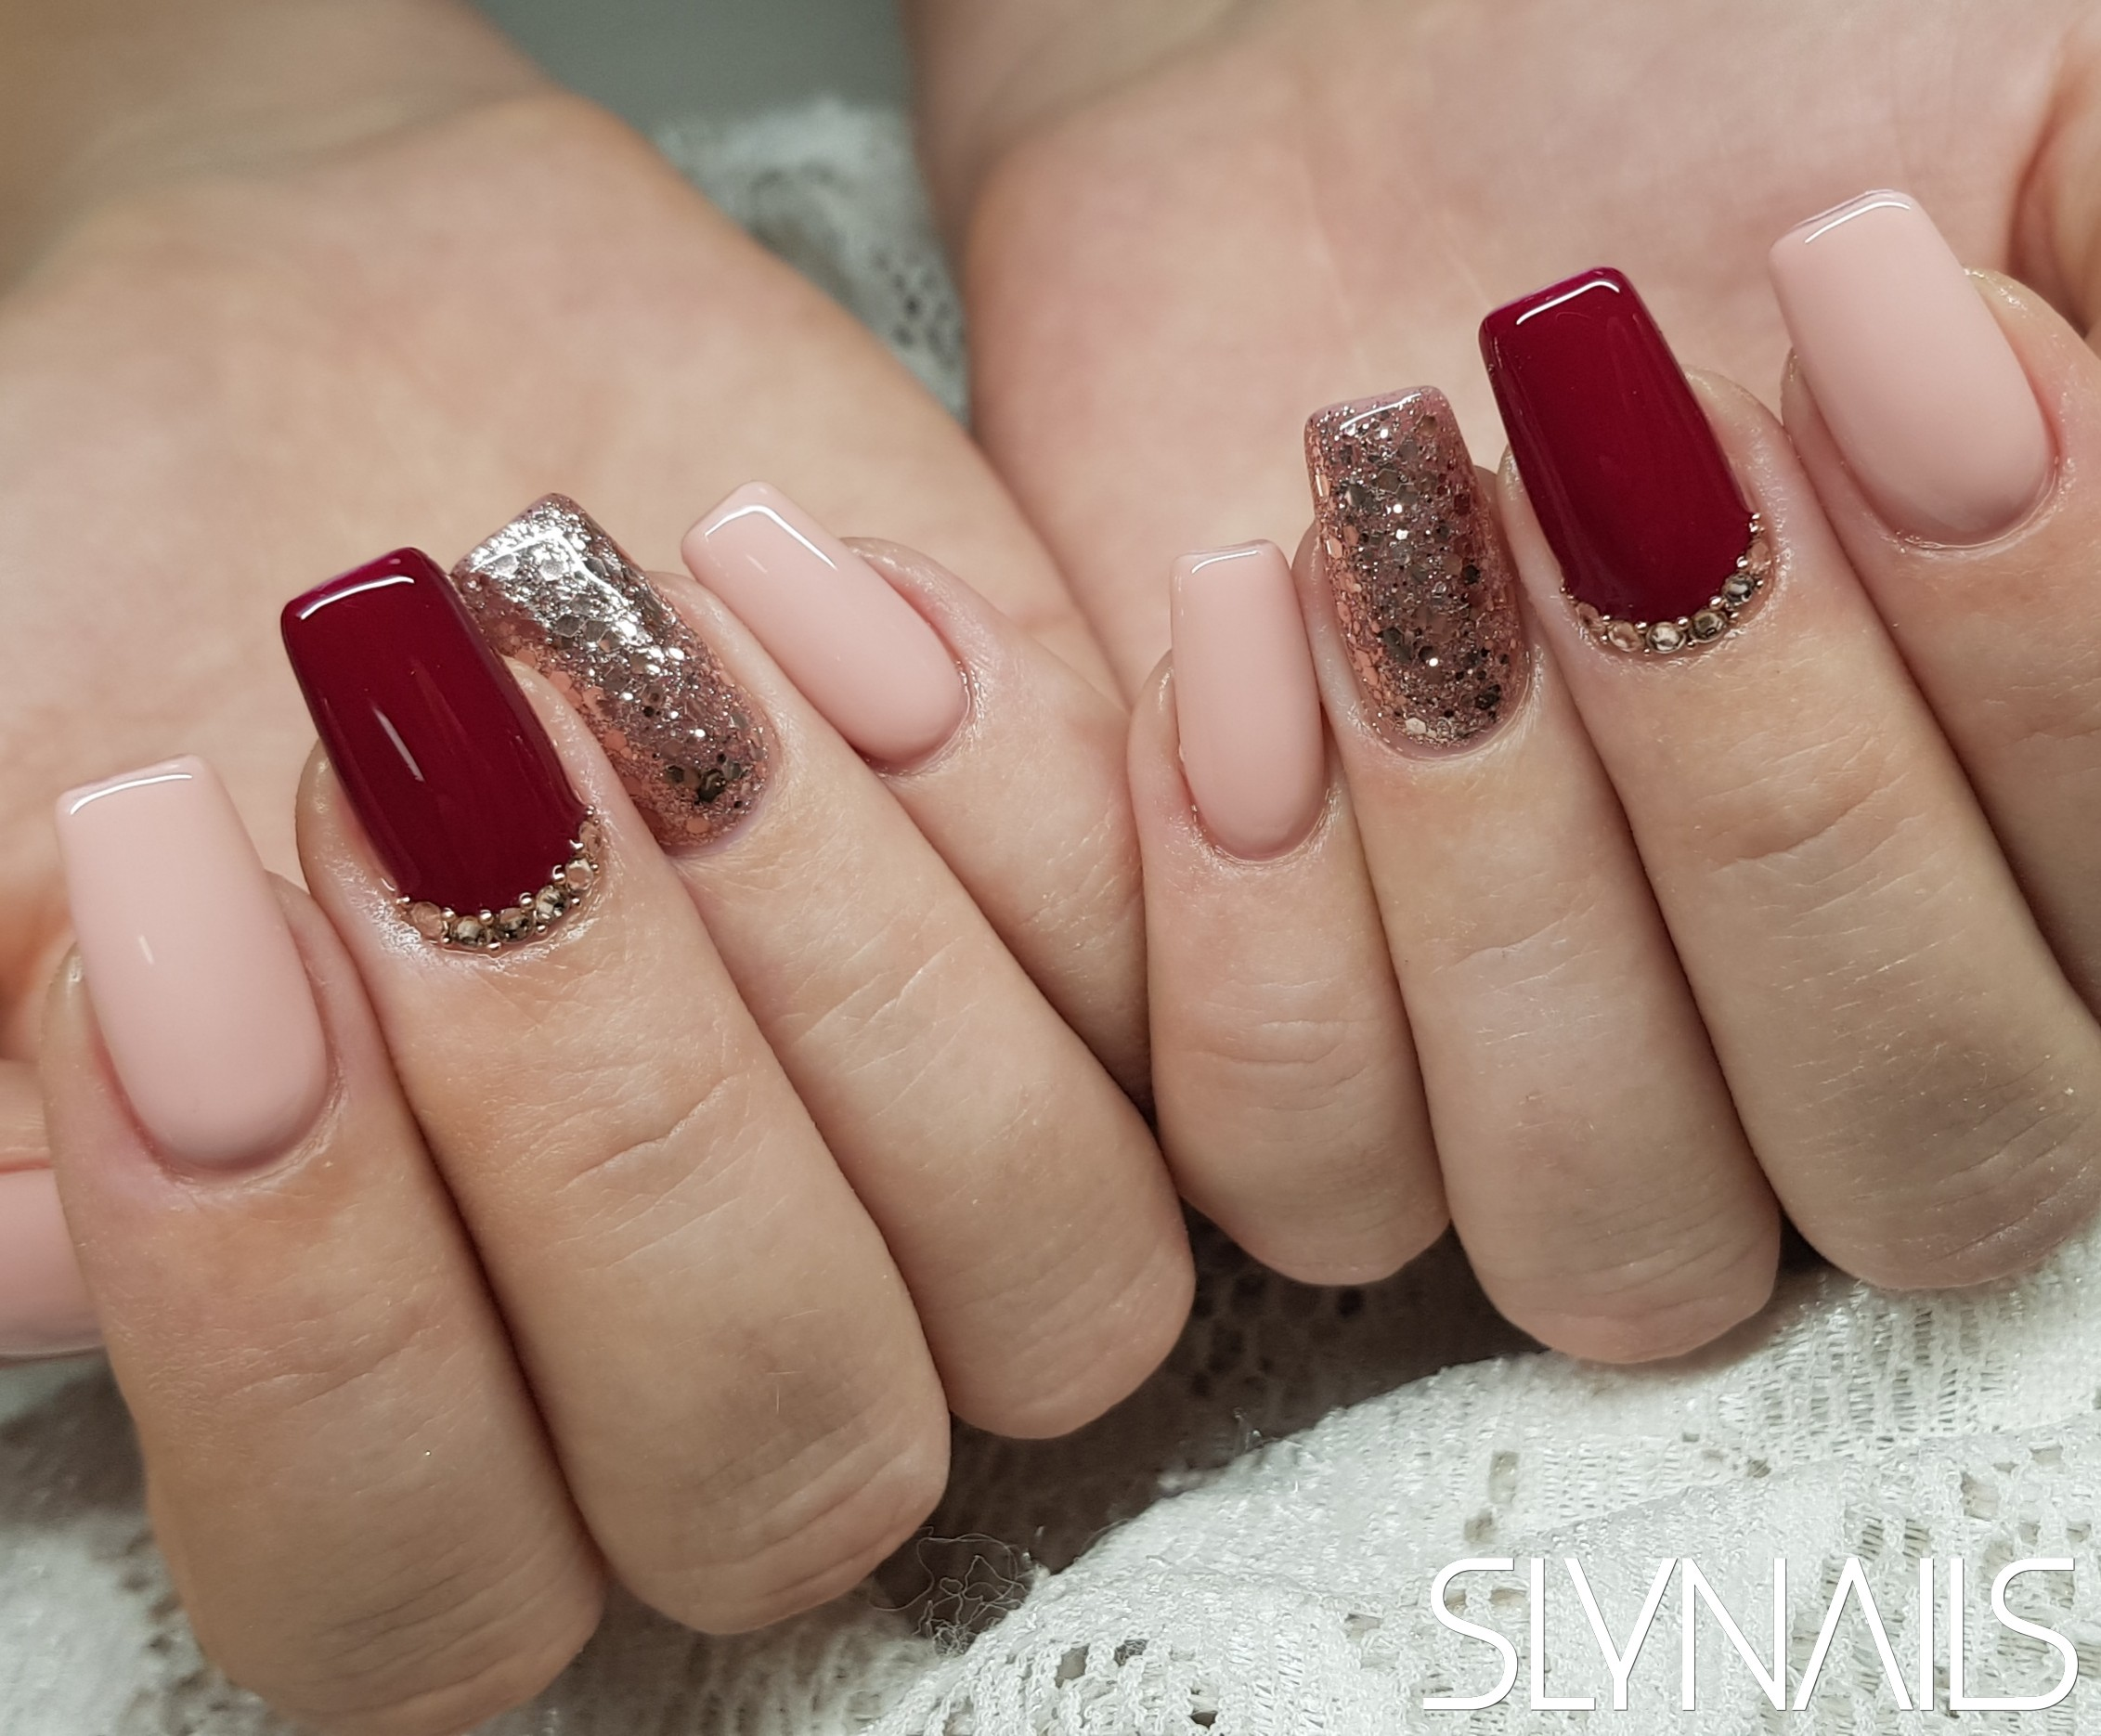 Nail extension, Square, Nude, Claret, Gold, Swarovski, One color